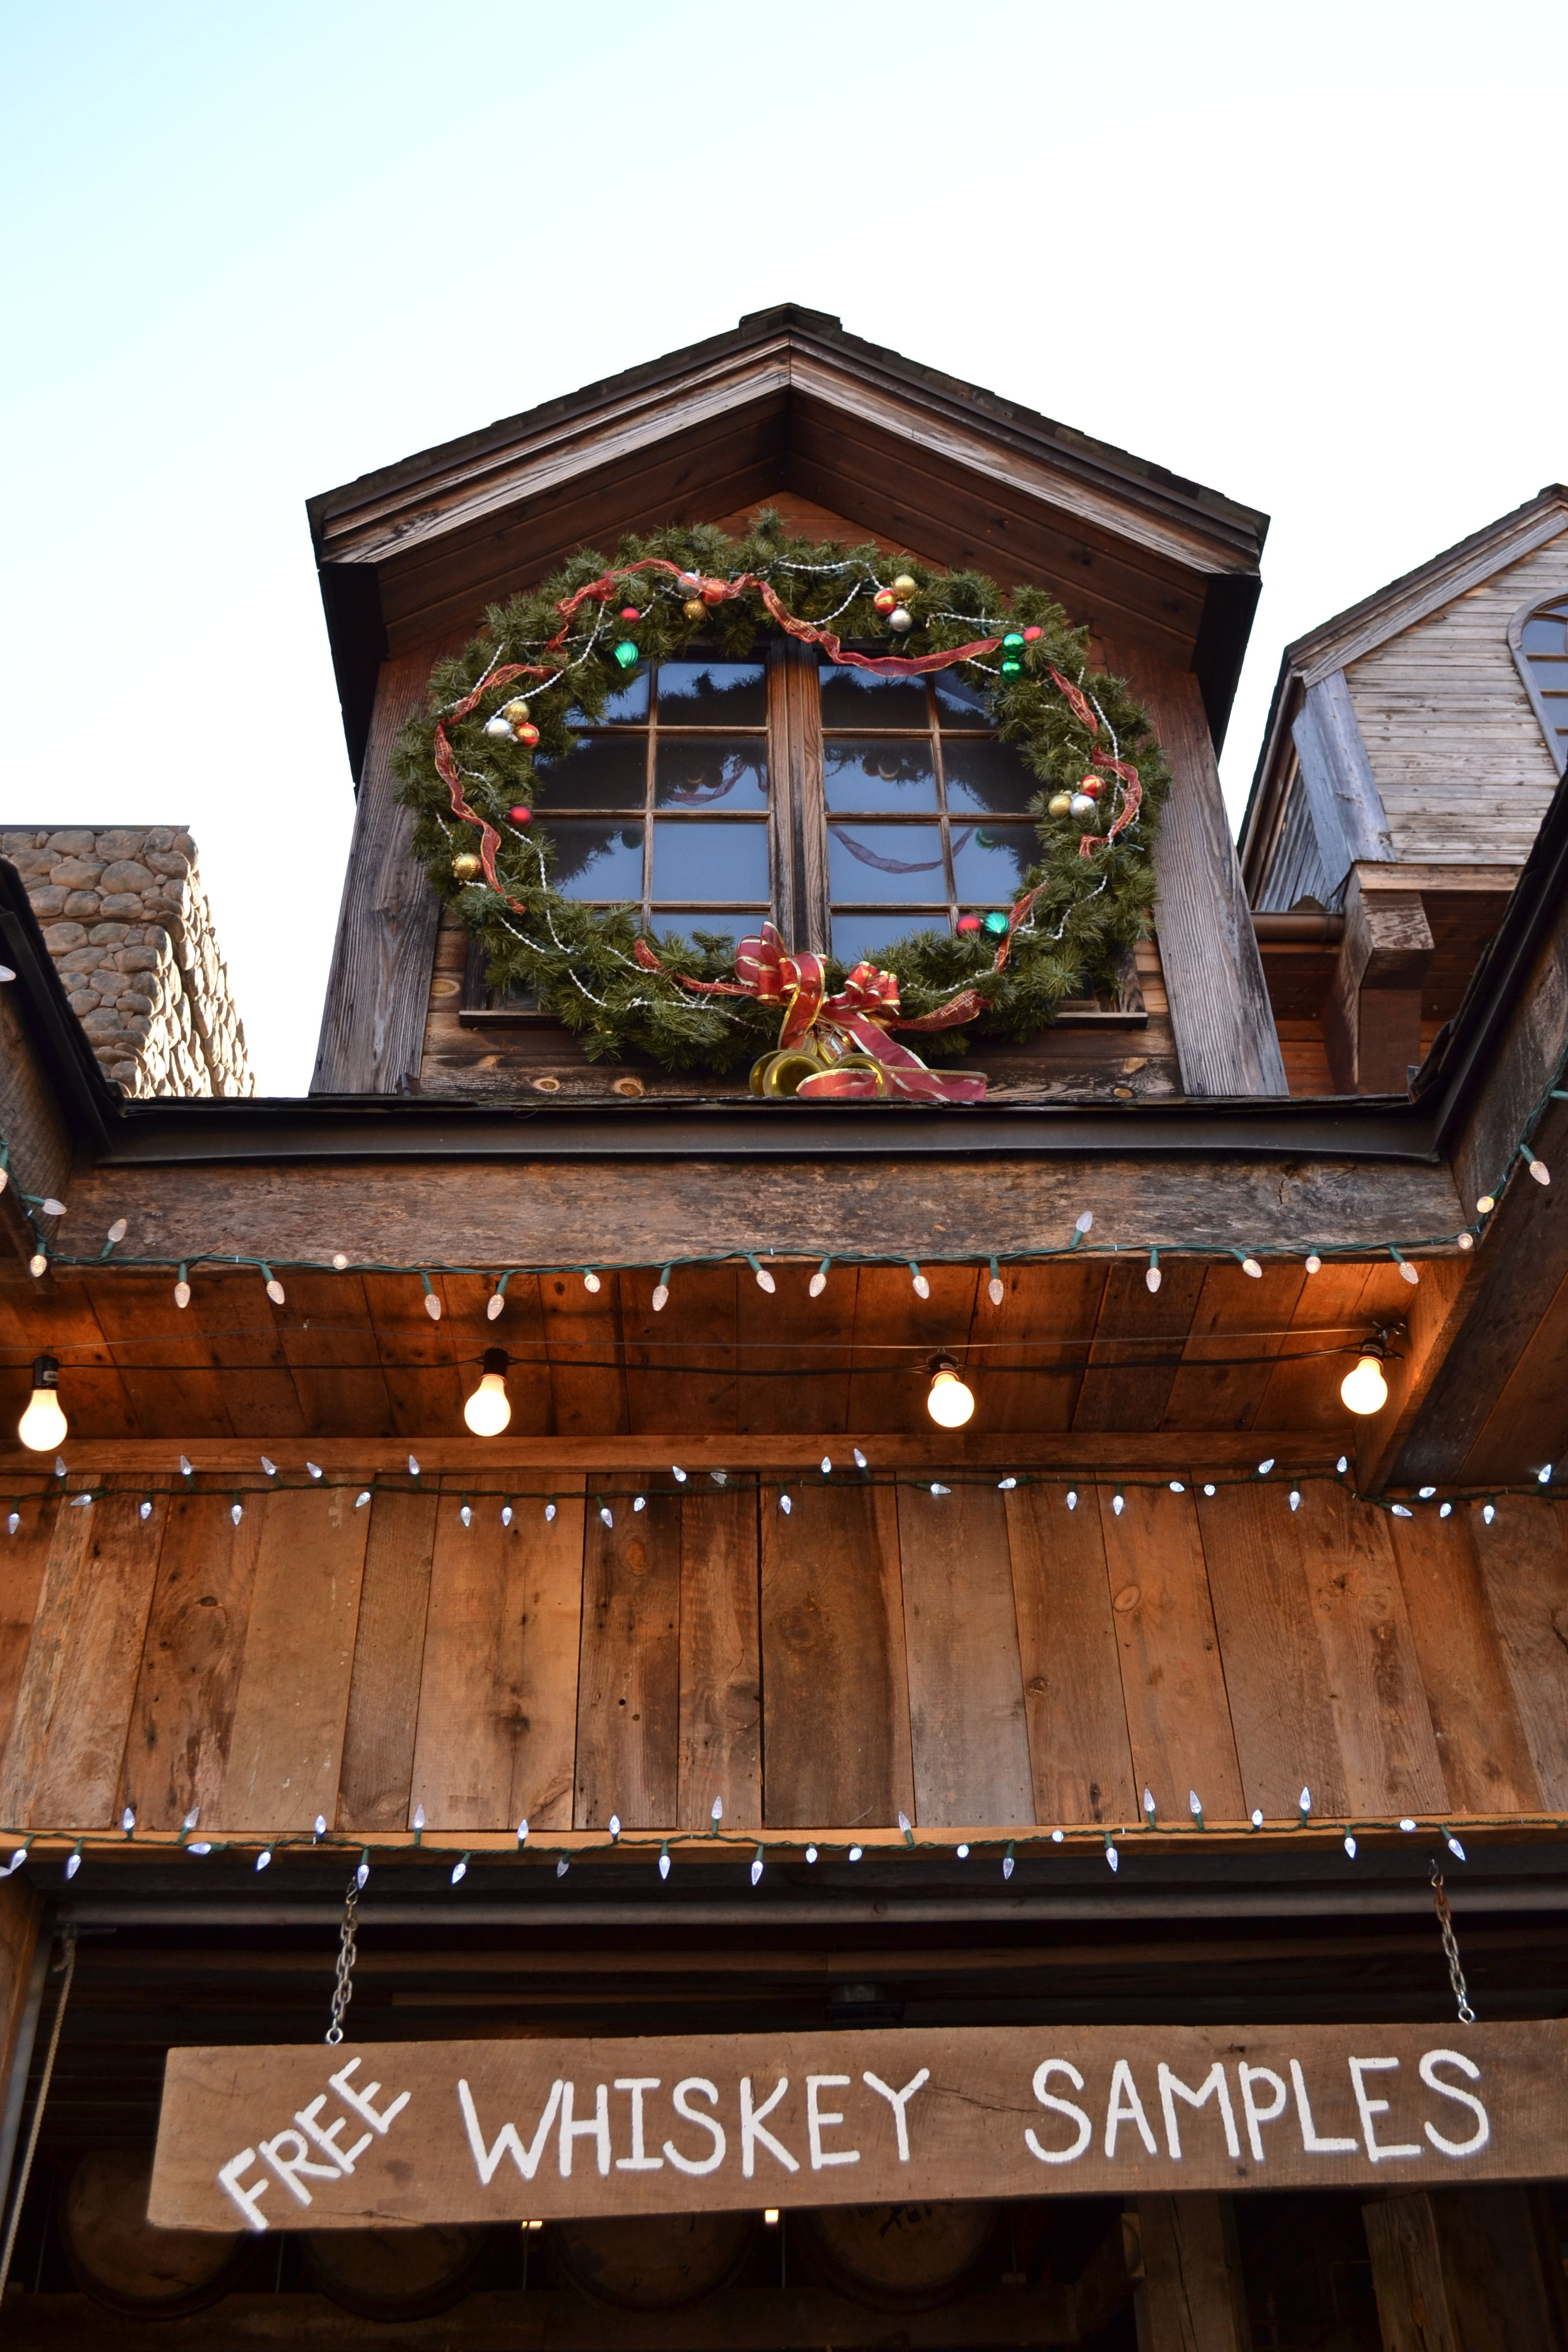 Cabins in gatlinburg tn decorated for christmas - Parkside Cabin Rentals Features Gatlinburg Cabins In The Smoky Mountains Come Stay In One Of Our Smoky Mountain Cabins Or Chalets In Gatlinburg Tennessee